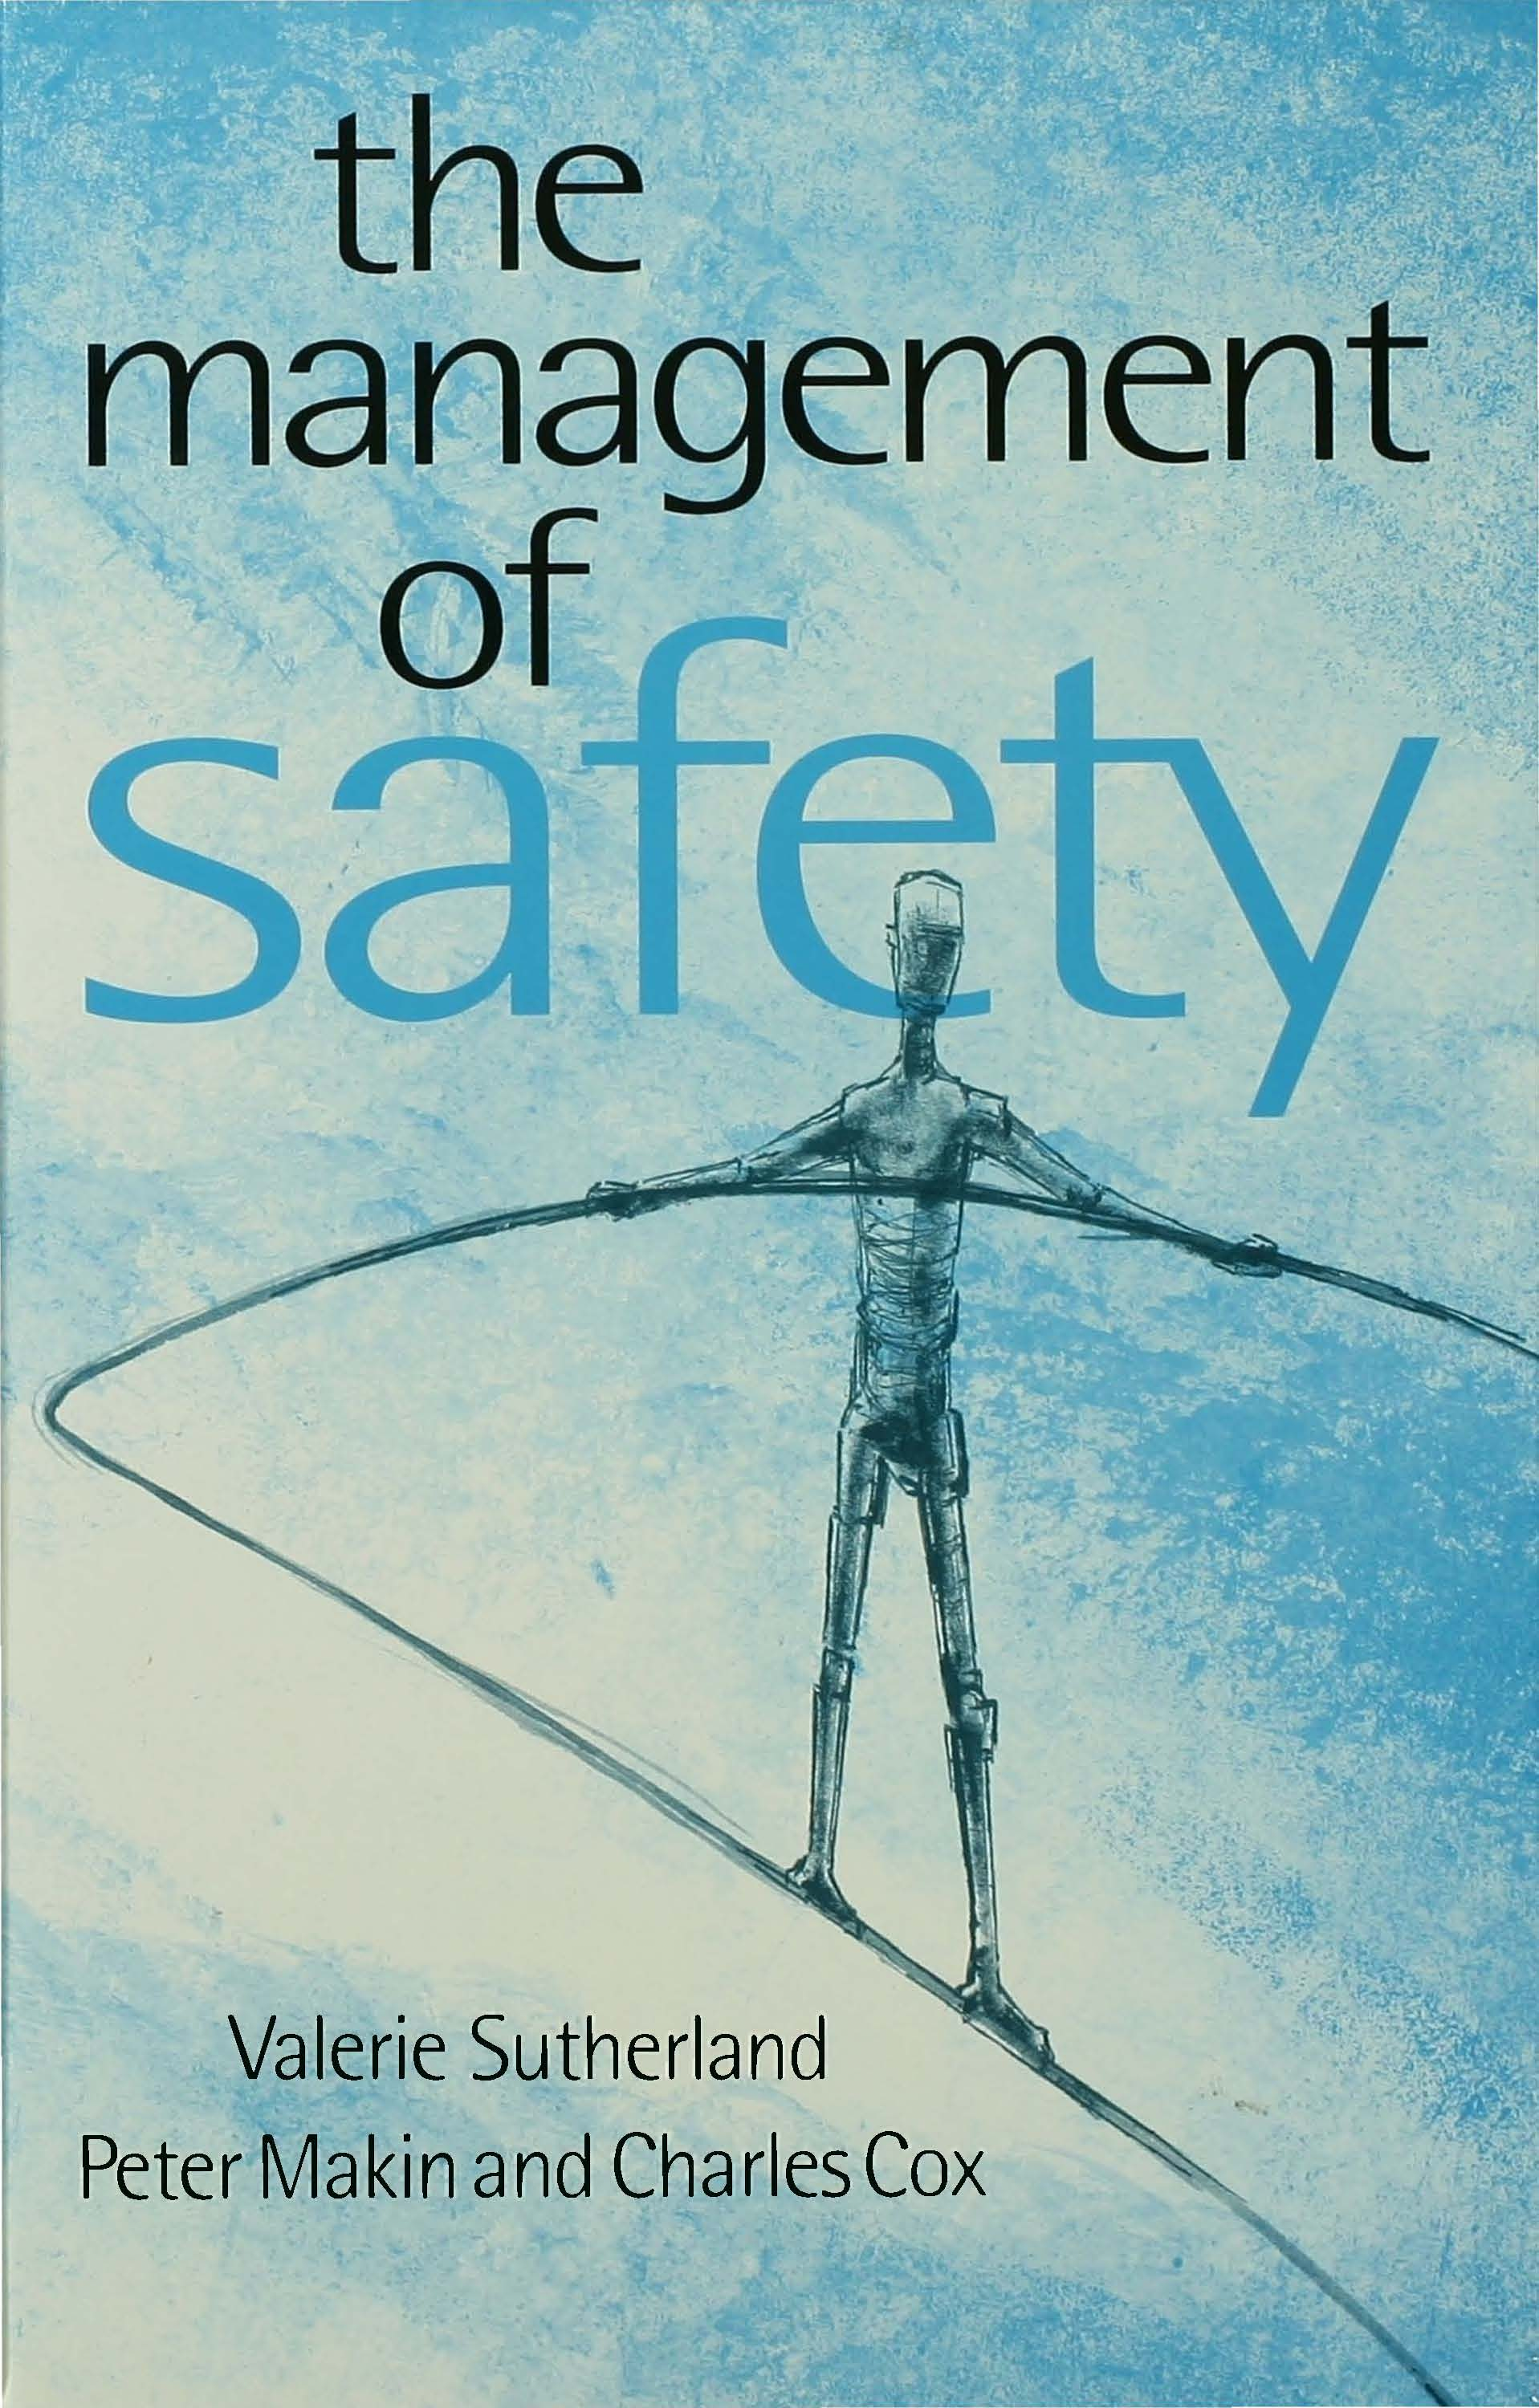 Download Ebook The Management of Safety by Valerie J Sutherland Pdf